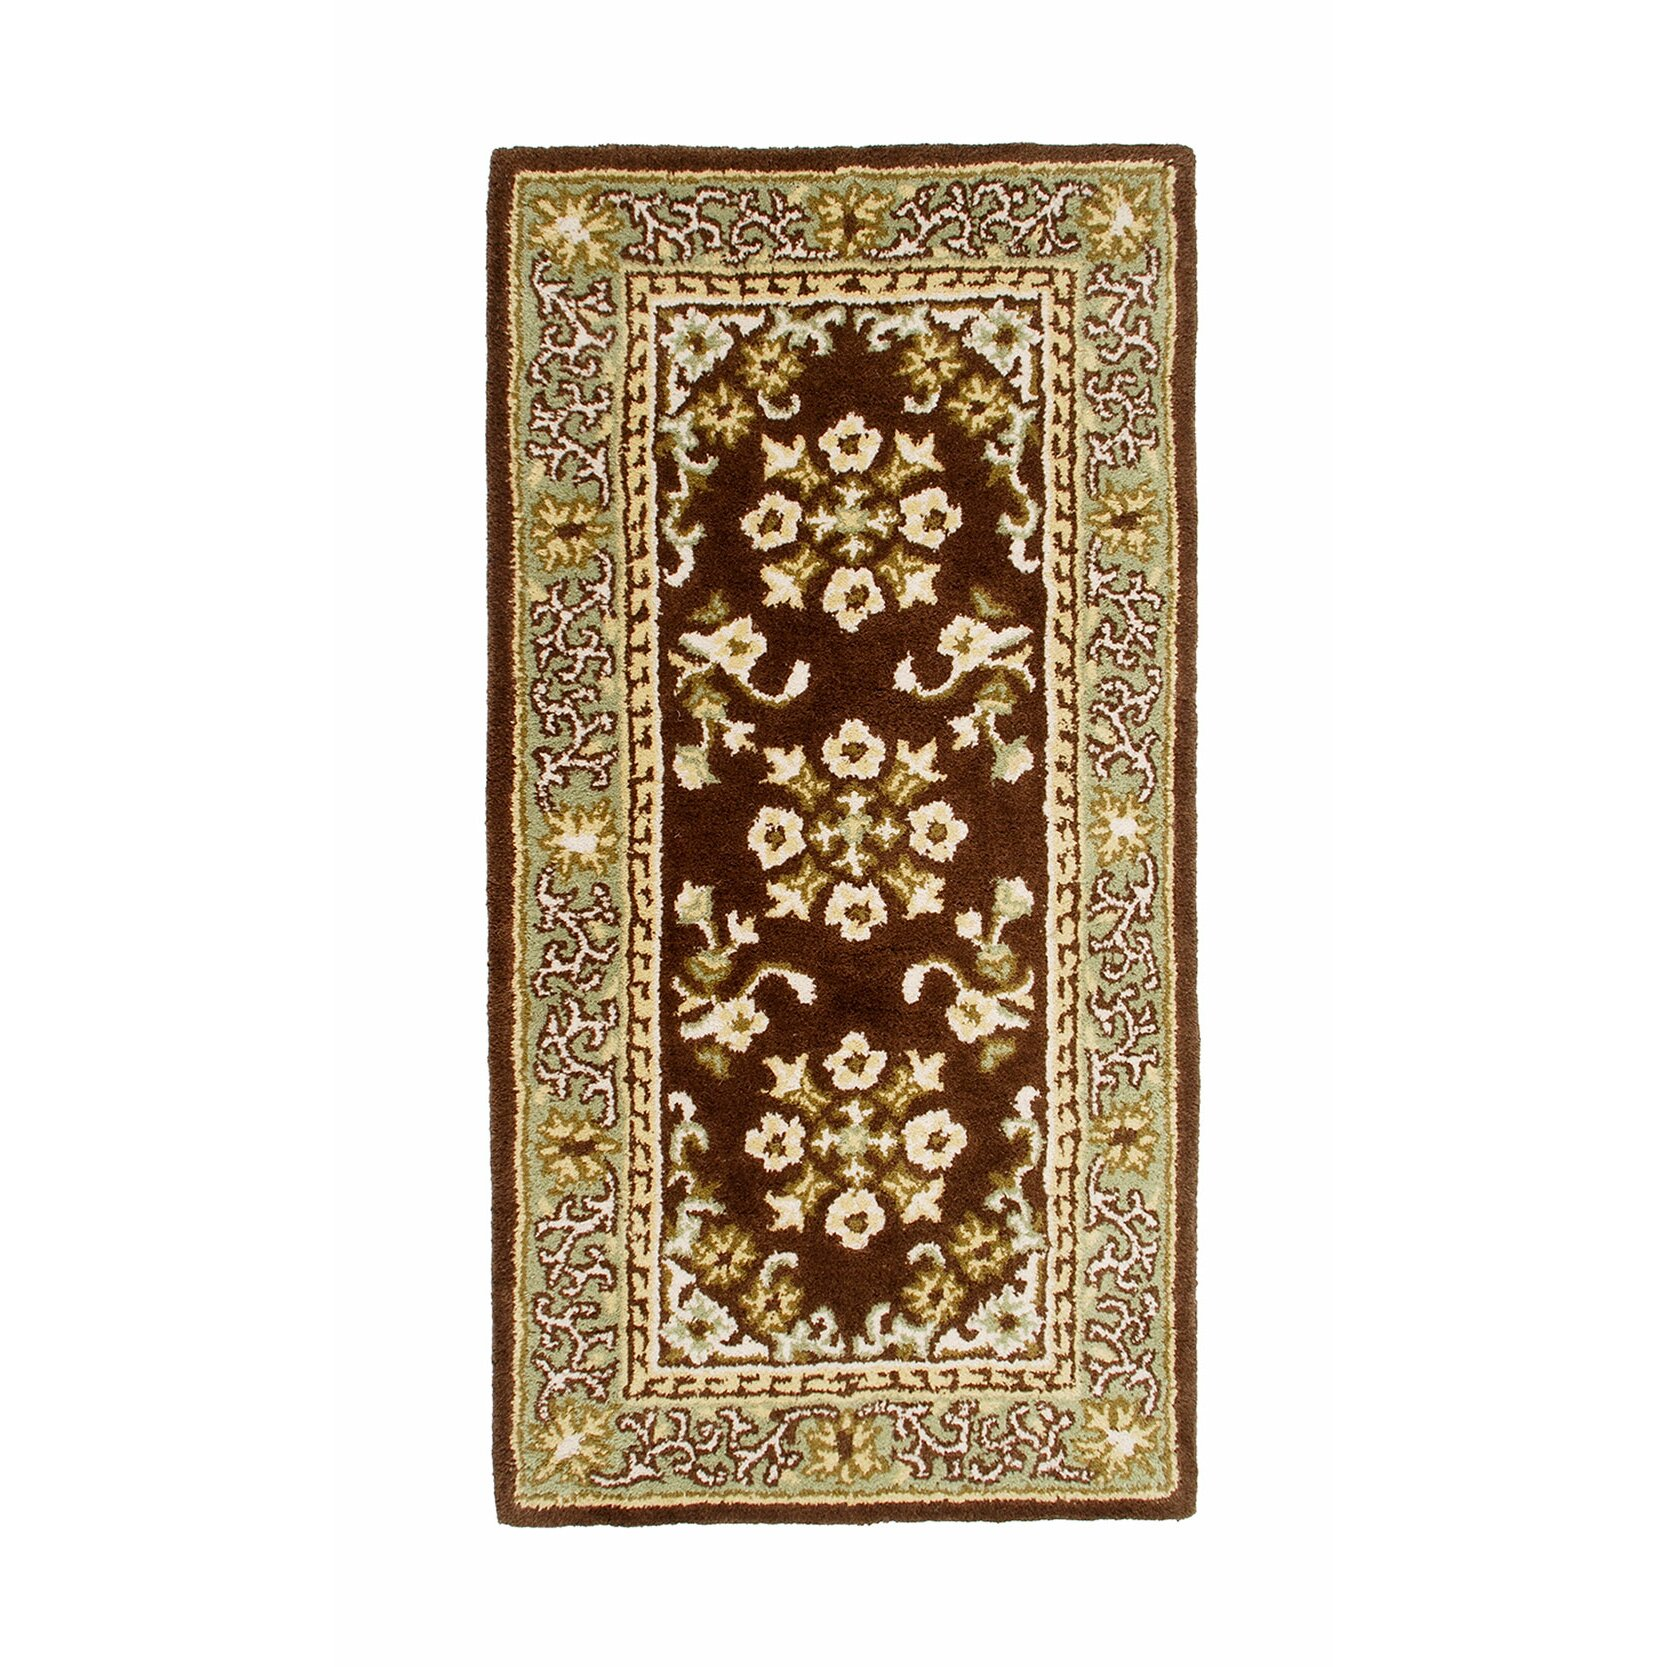 Hearth Rugs: ACHLA Oriental Wool Hearth Rug I & Reviews